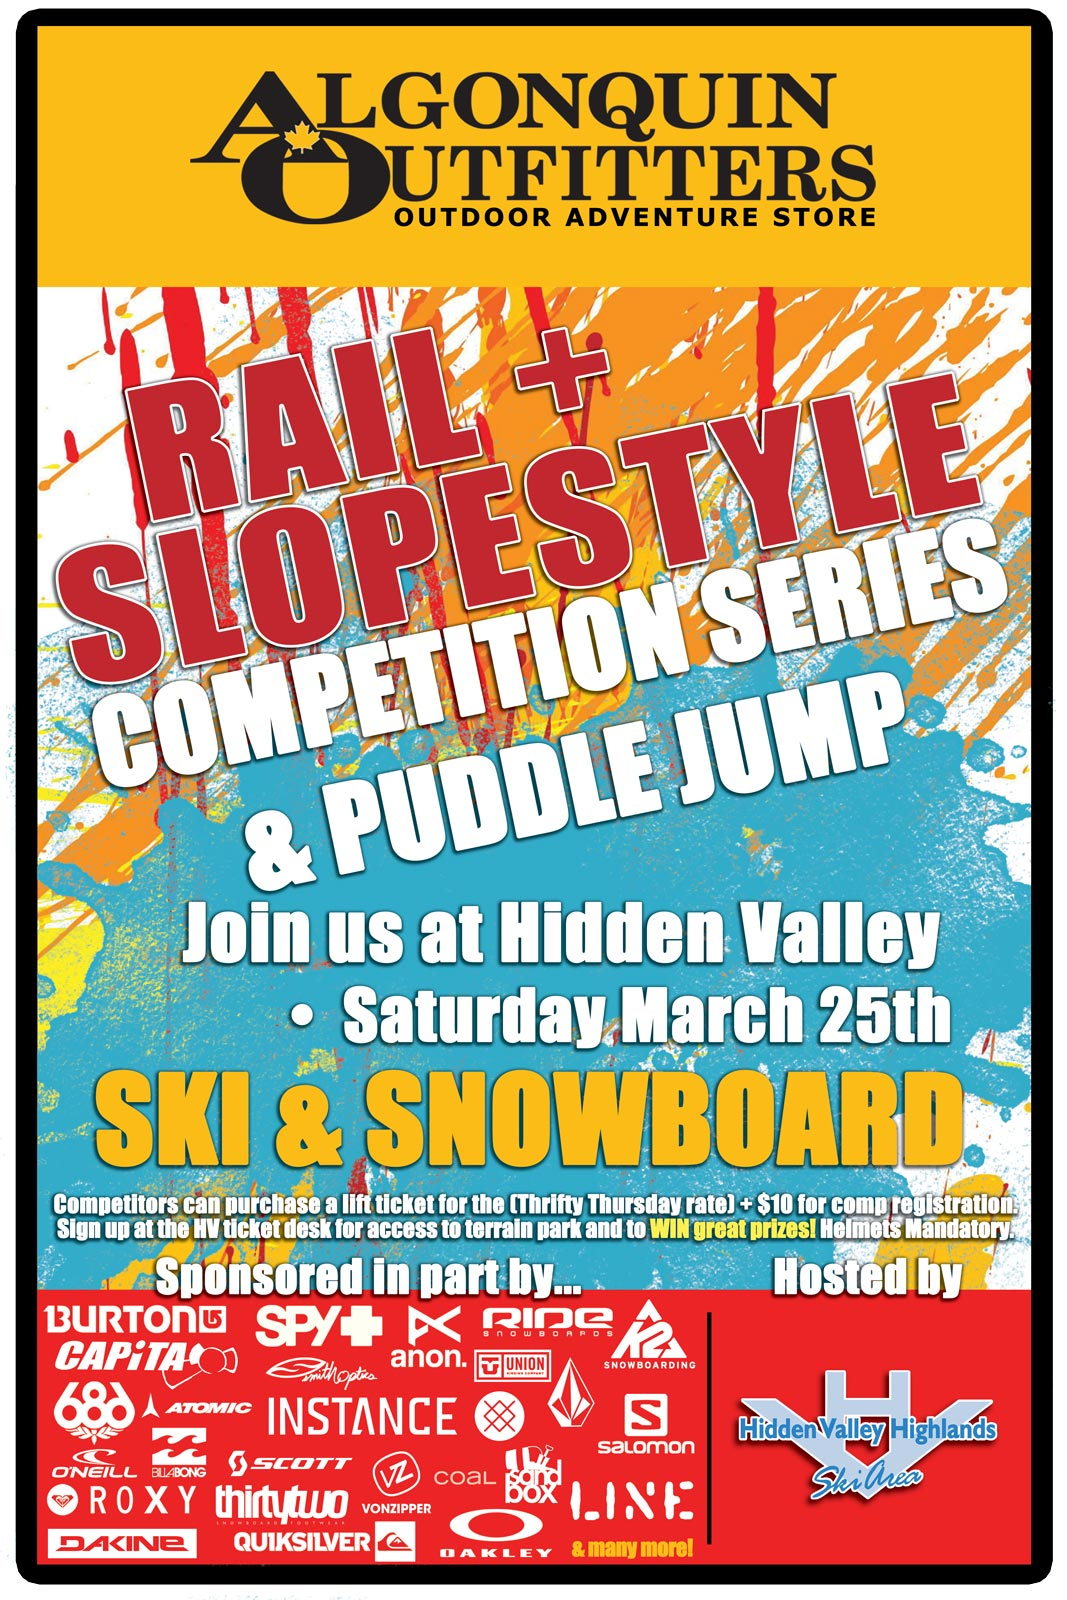 Rail and Slopstyle comp and puddle jump at hidden valley